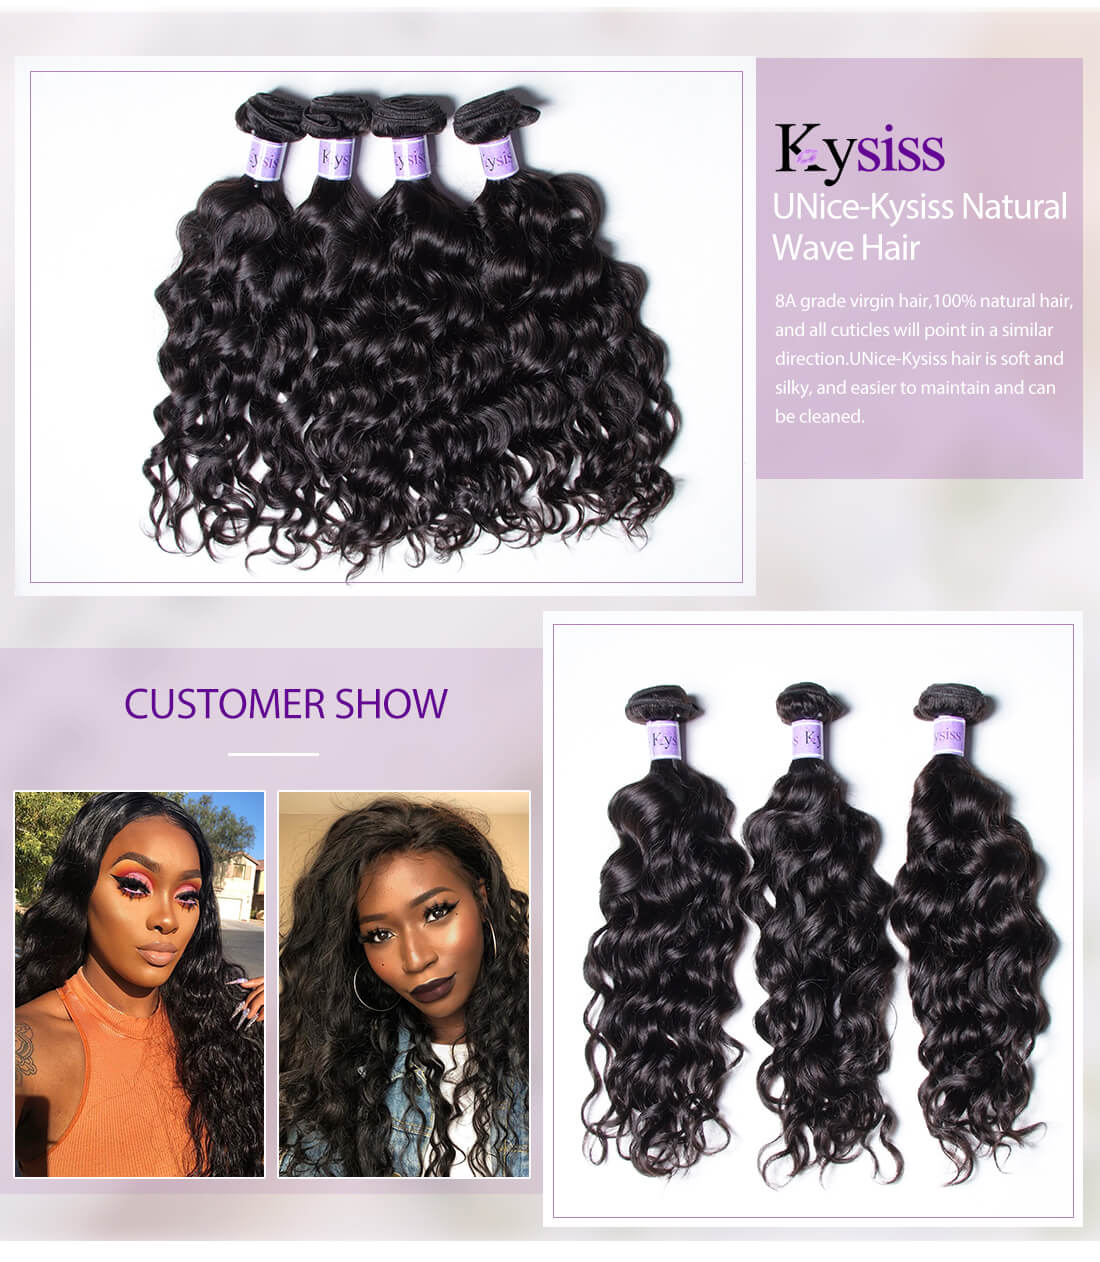 UNice Hair Kysiss Series Natural Wave Hair